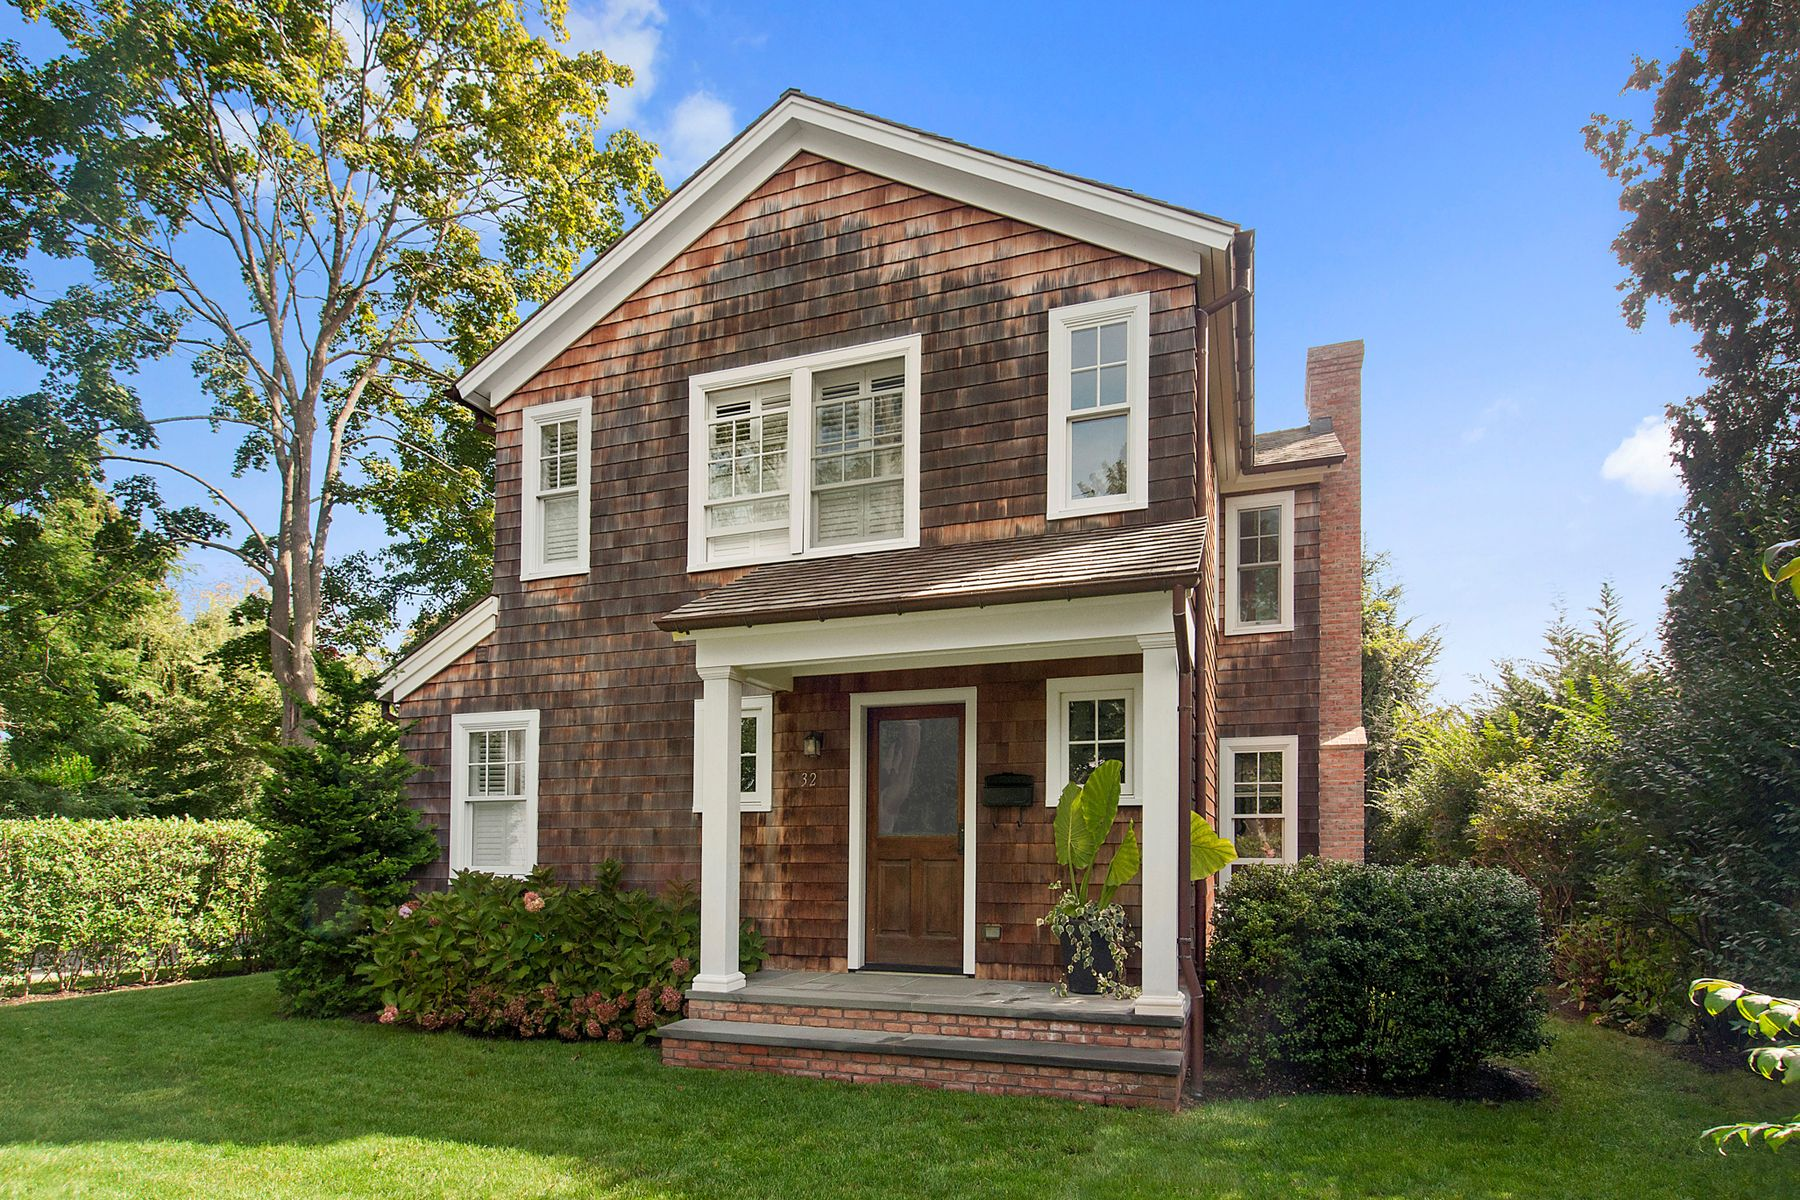 Single Family Home for Sale at Southampton Village - Centrally Located 32 Henry Street, Southampton, New York, 11968 United States